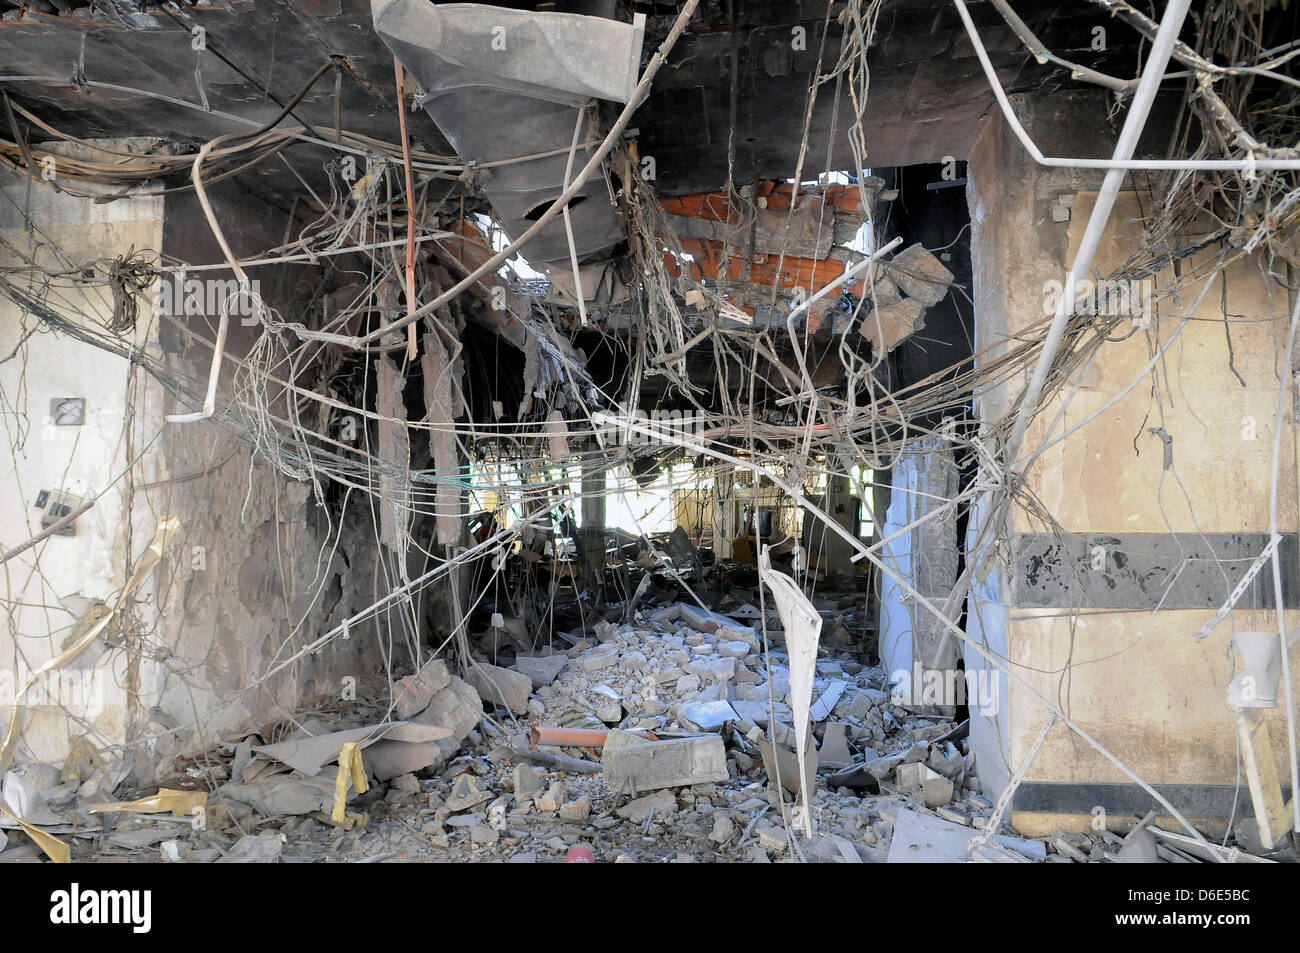 pictures to hang in office. Cables And Wires Hang From The Ceiling Of A Destroyed Office Building In Bab Al-Azizia District Tripoli, Libya, 1 December 2011. Pictures To